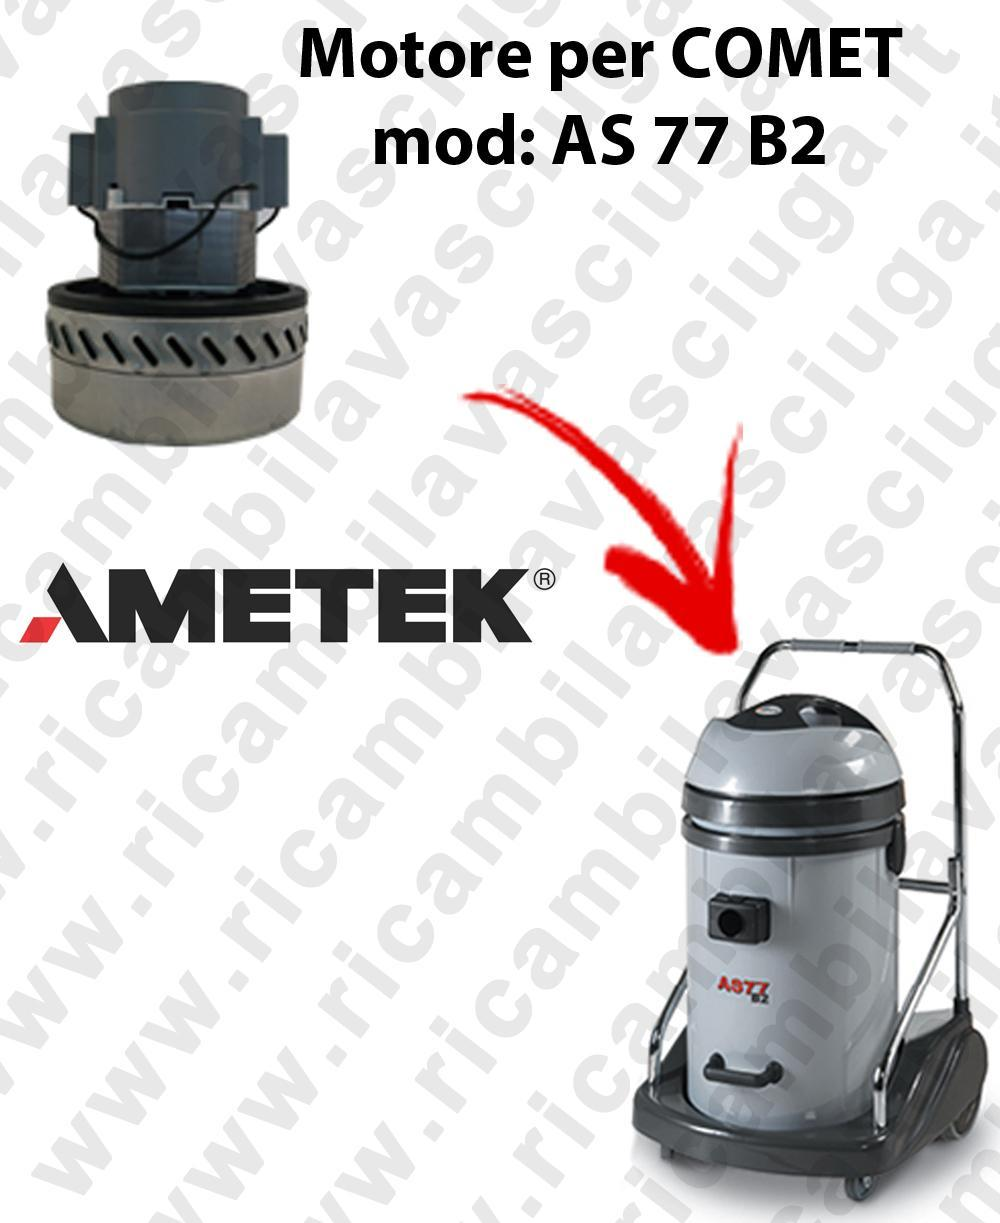 AS 77 B2  Ametek Vacuum Motor for vacuum cleaner COMET